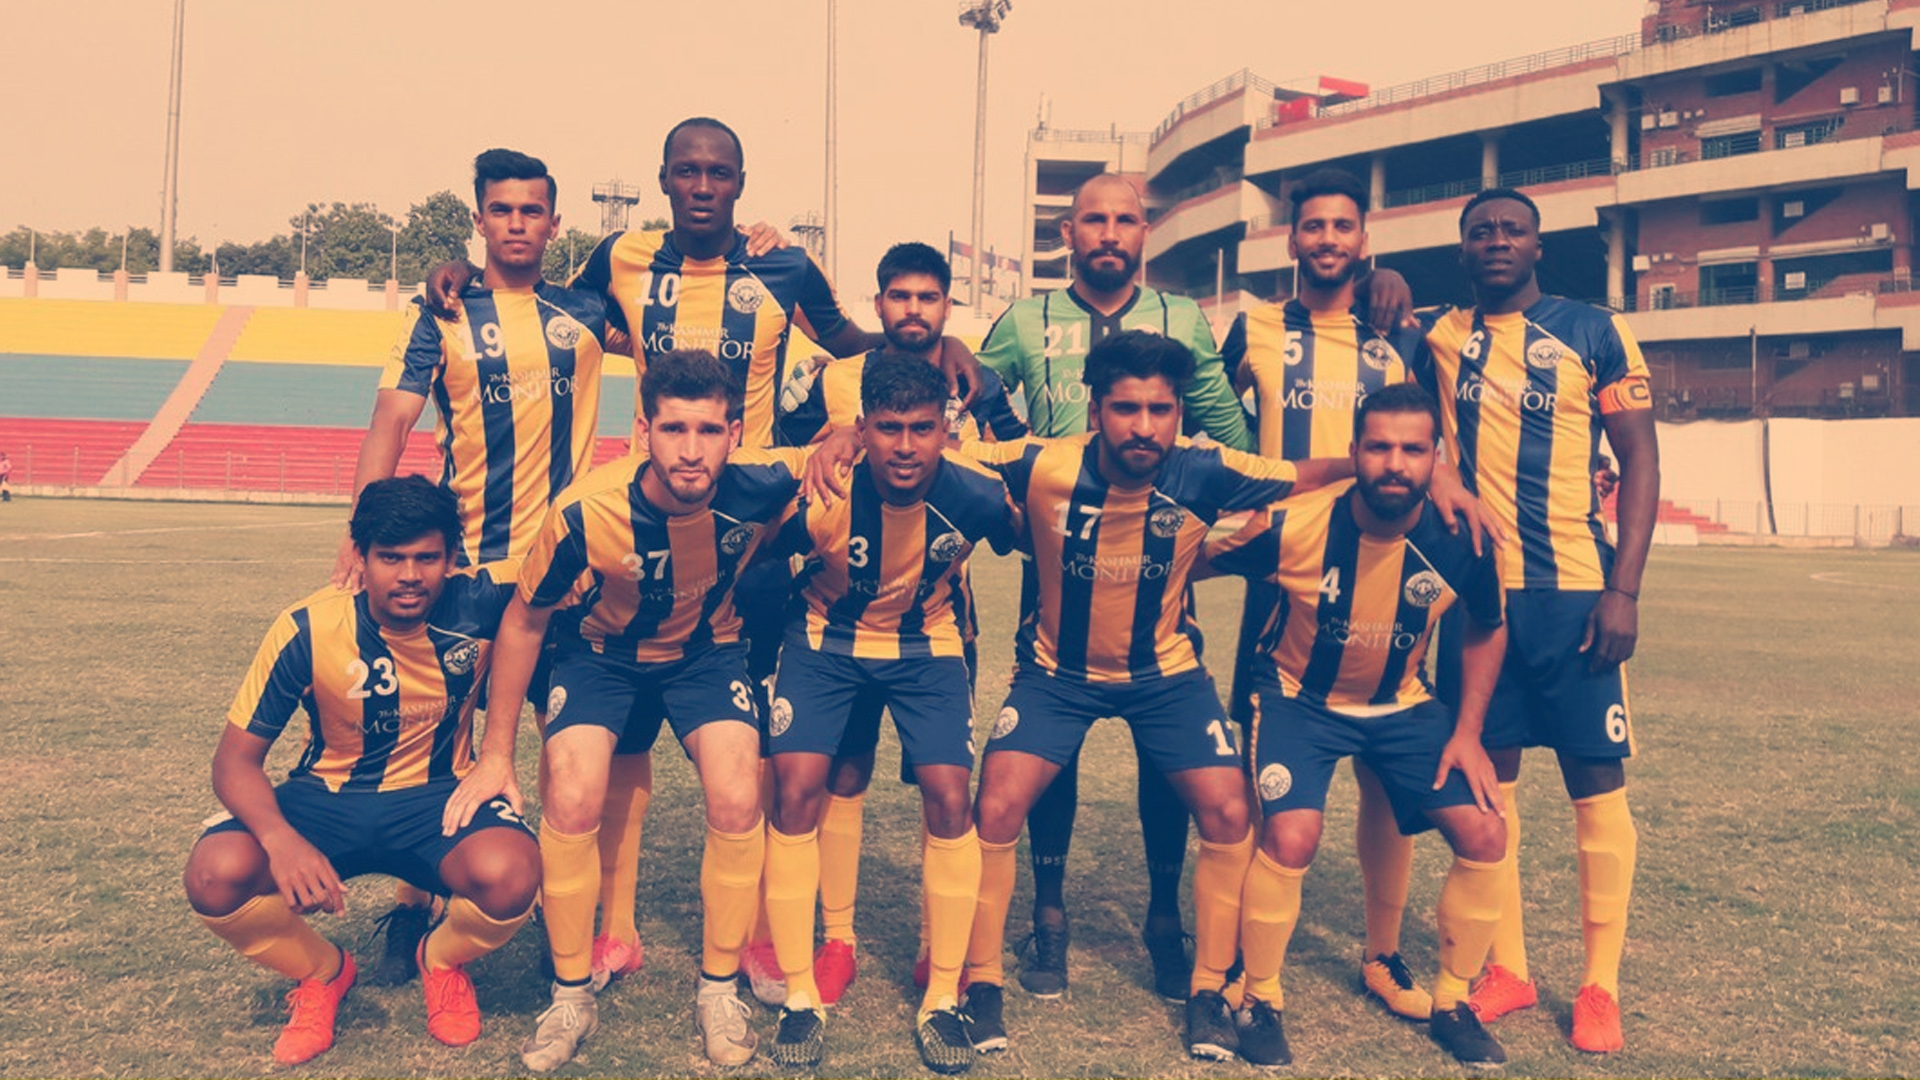 This Kashmiri Football Club Is Fighting for a New Beginning